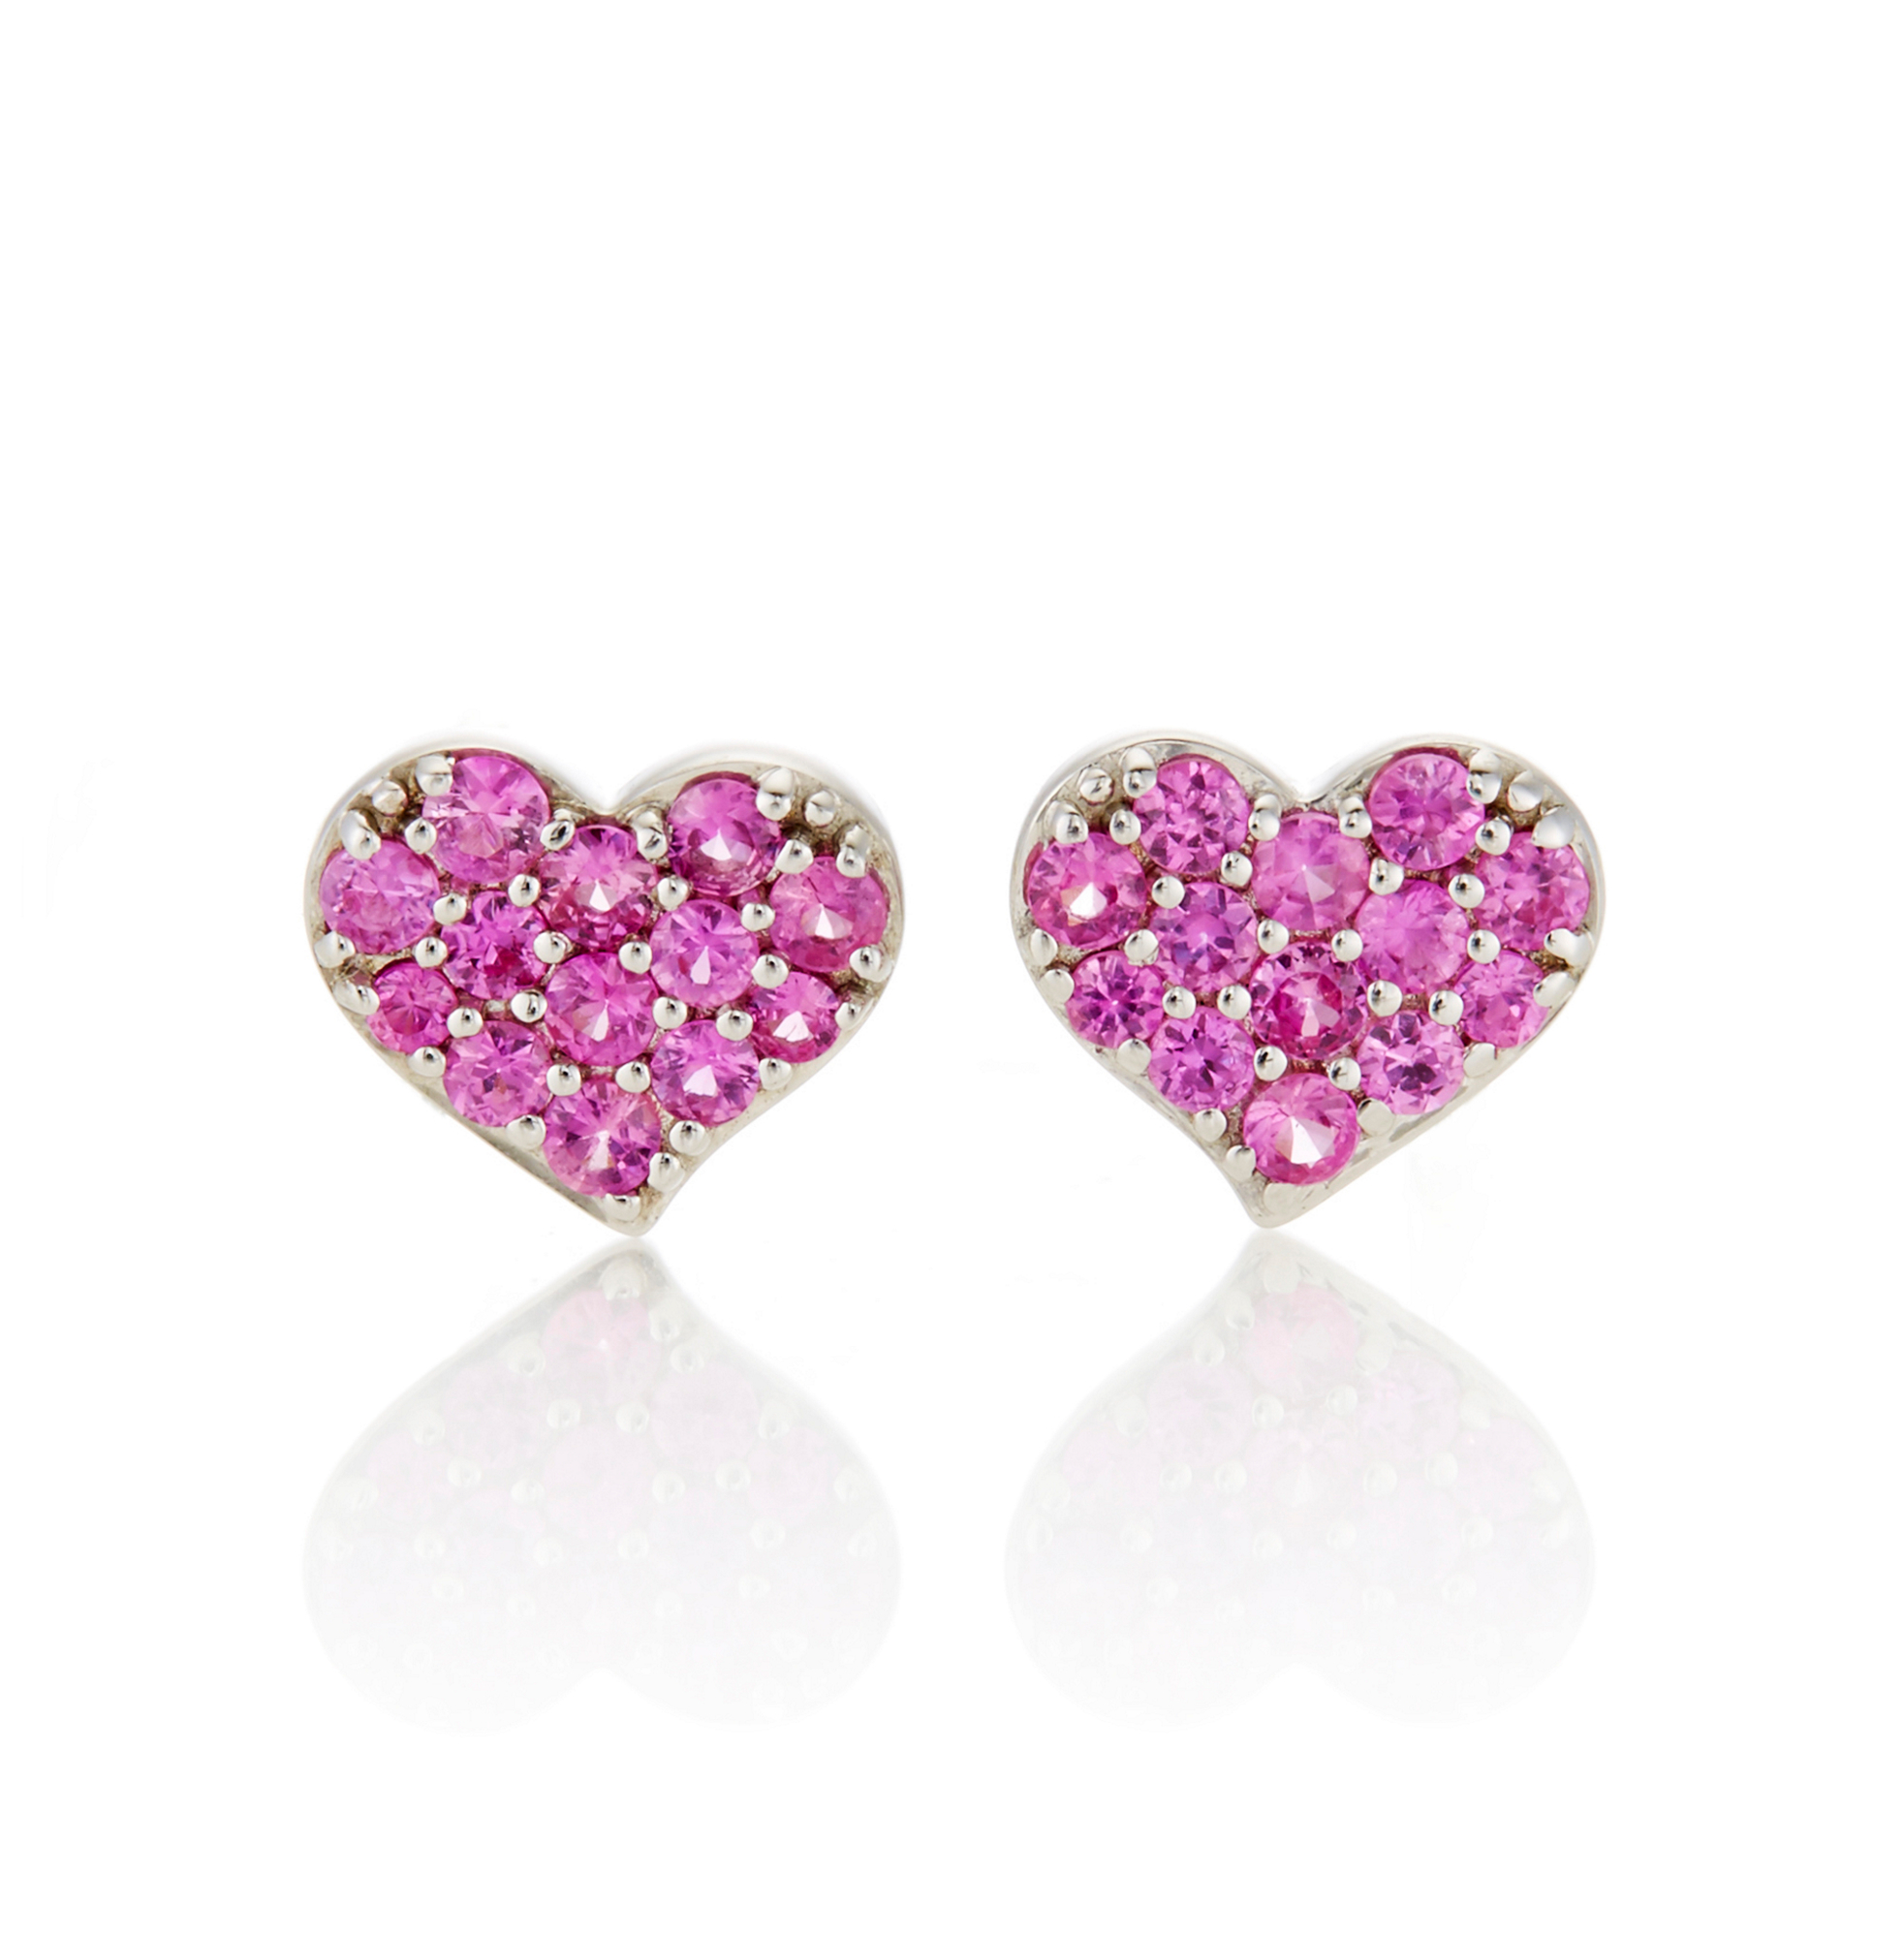 Gump's Pink Sapphire Heart Stud Earrings